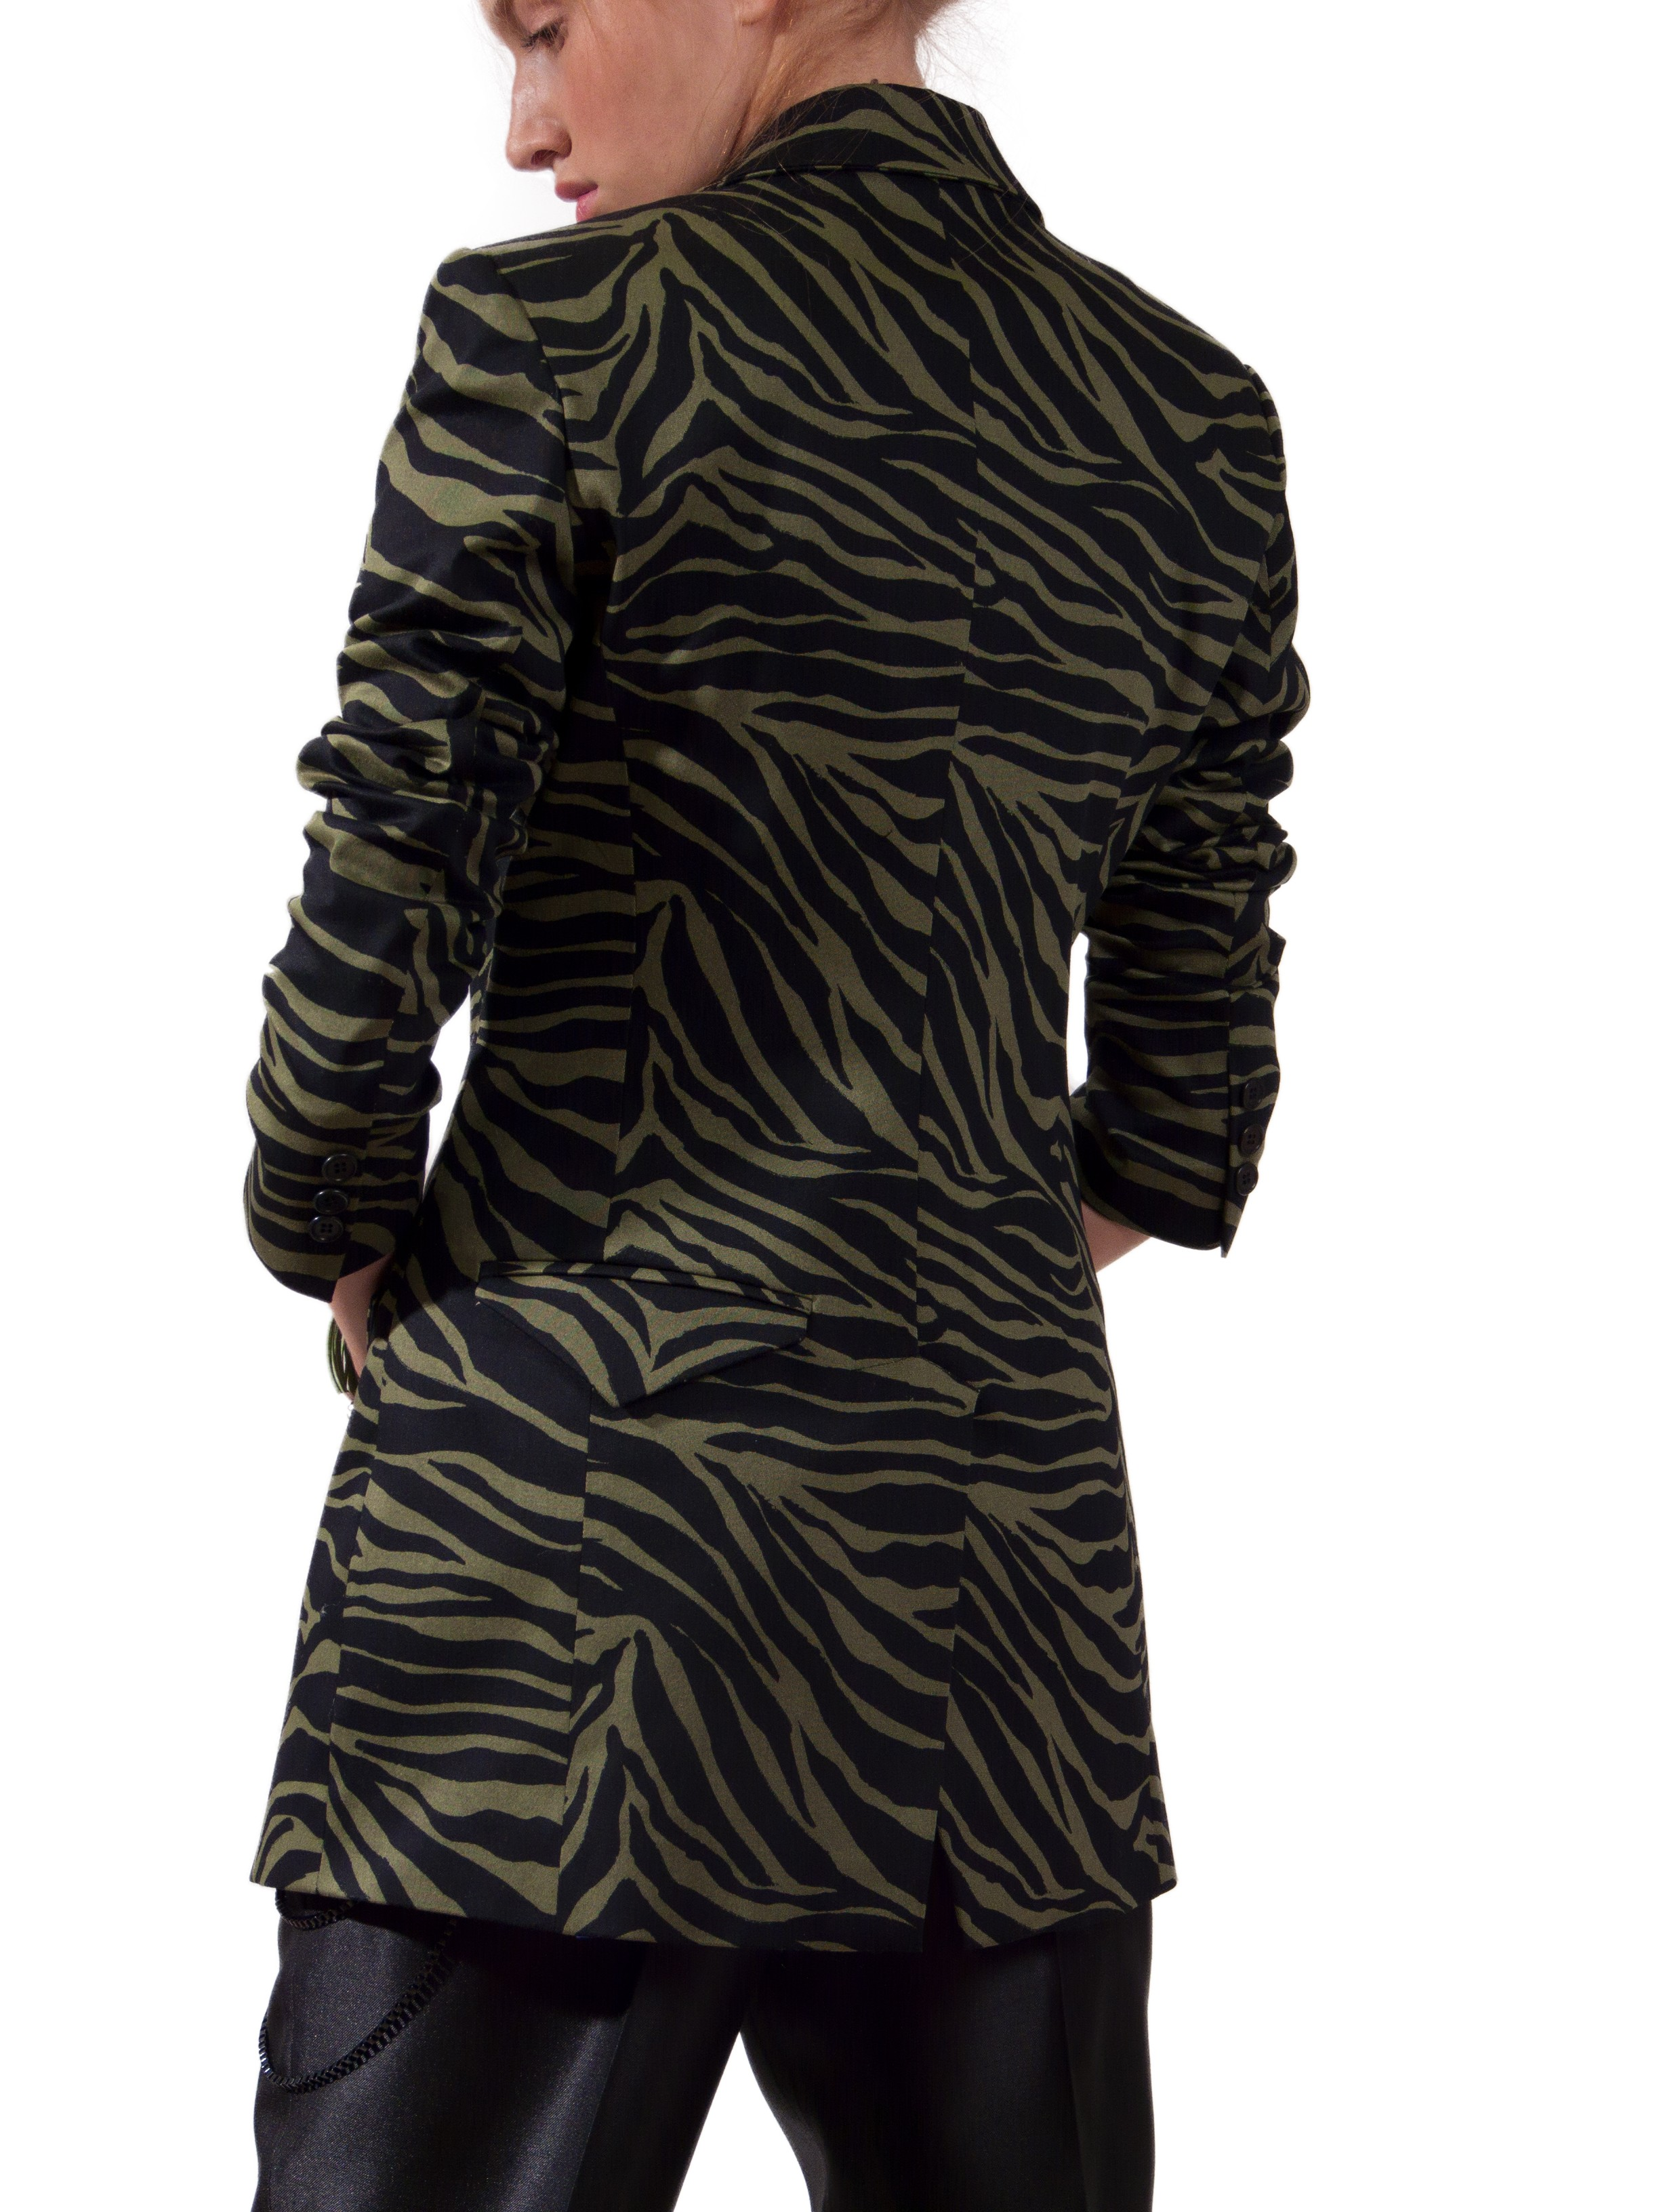 JSP SLIM ZEBRA JACKET